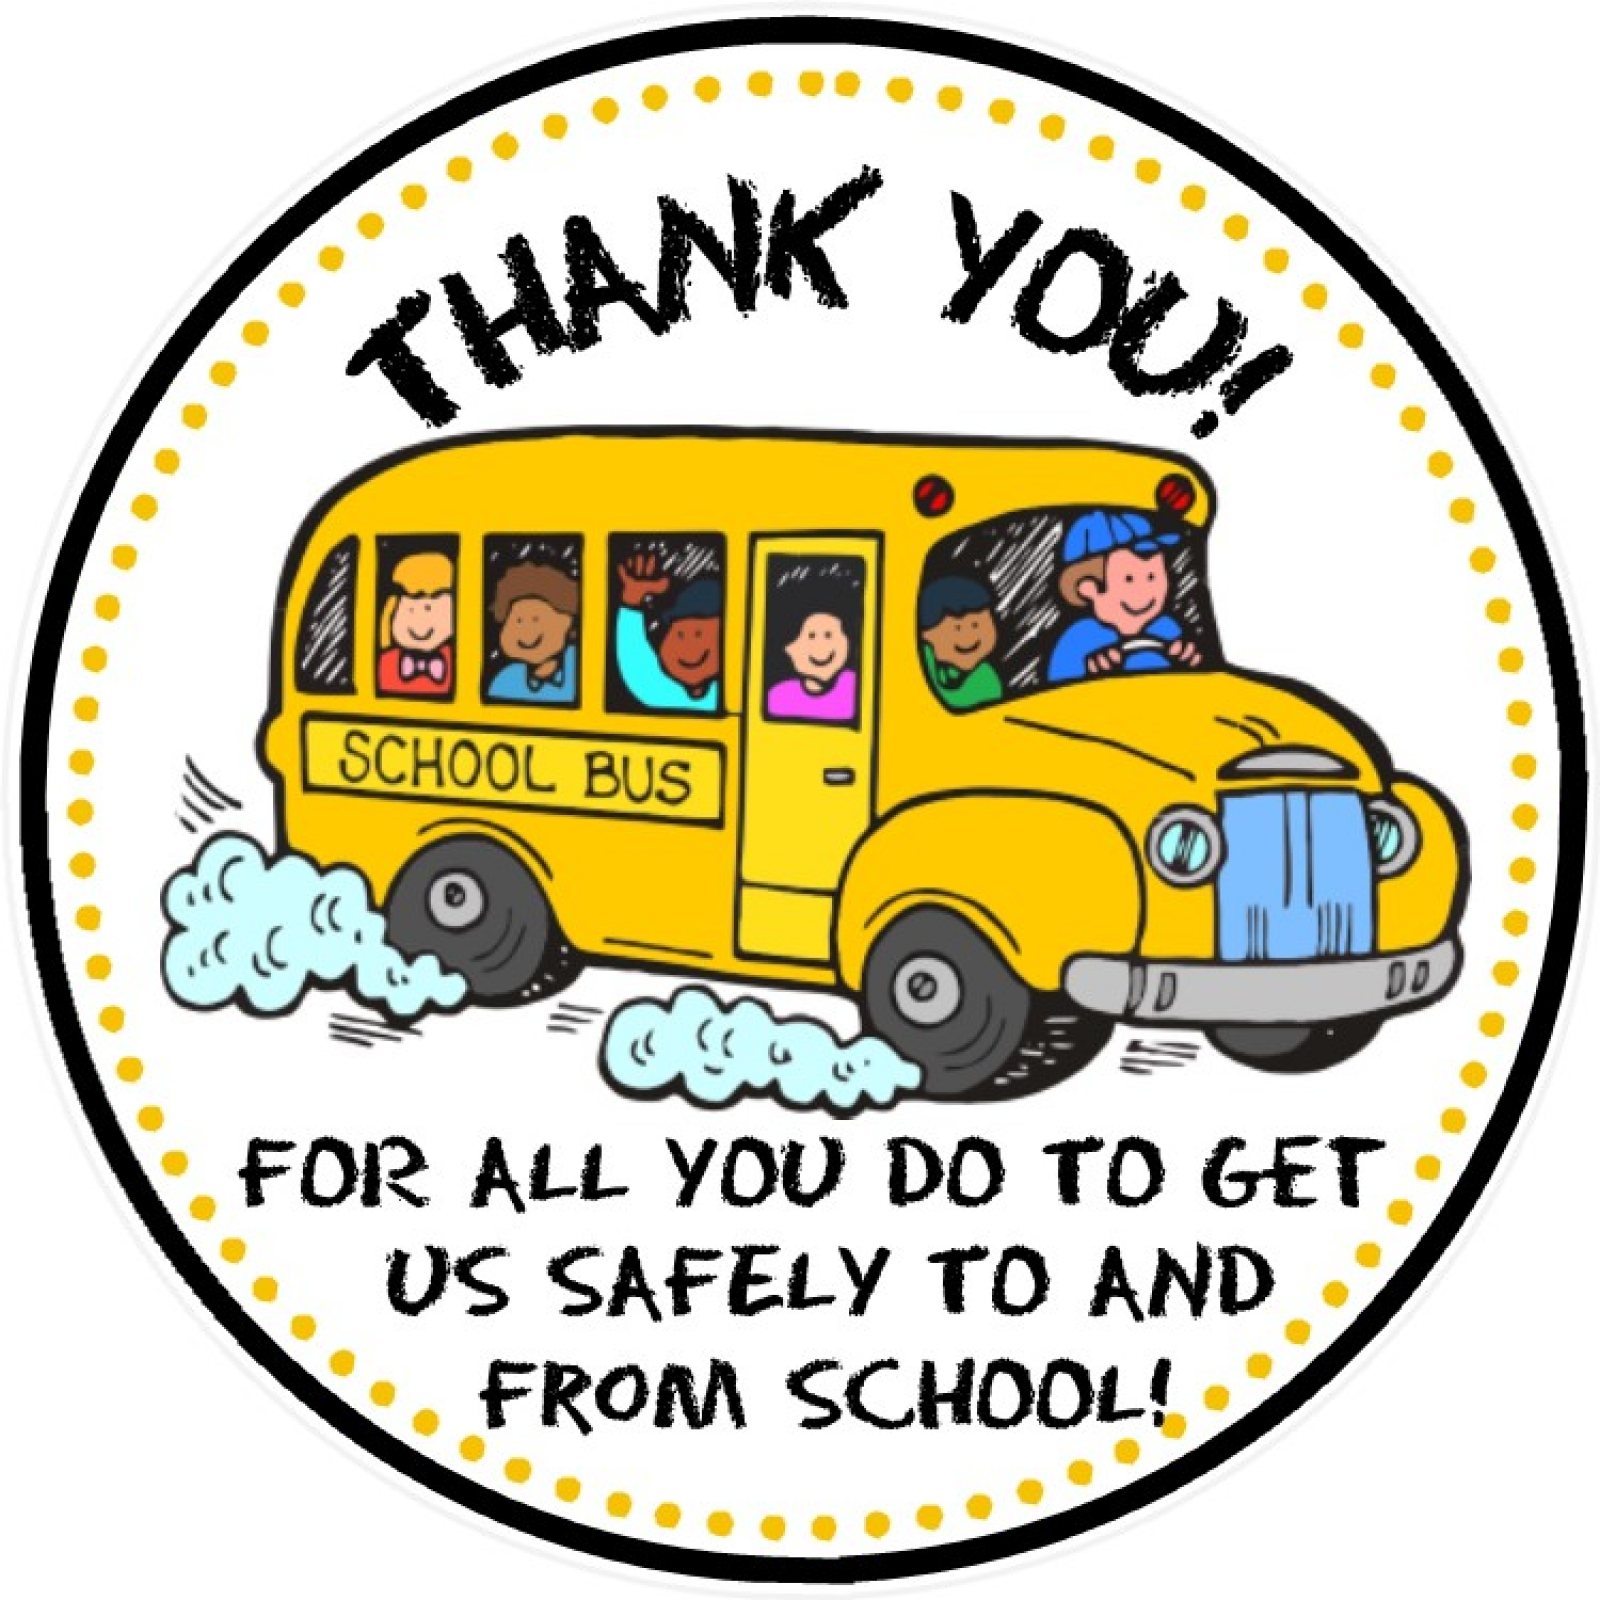 photograph about Bus Driver Thank You Card Printable called College or university Bus Driver Thank On your own Tag - PRINTABLE History - Yourself PRINT / Bus Driver Appreciation